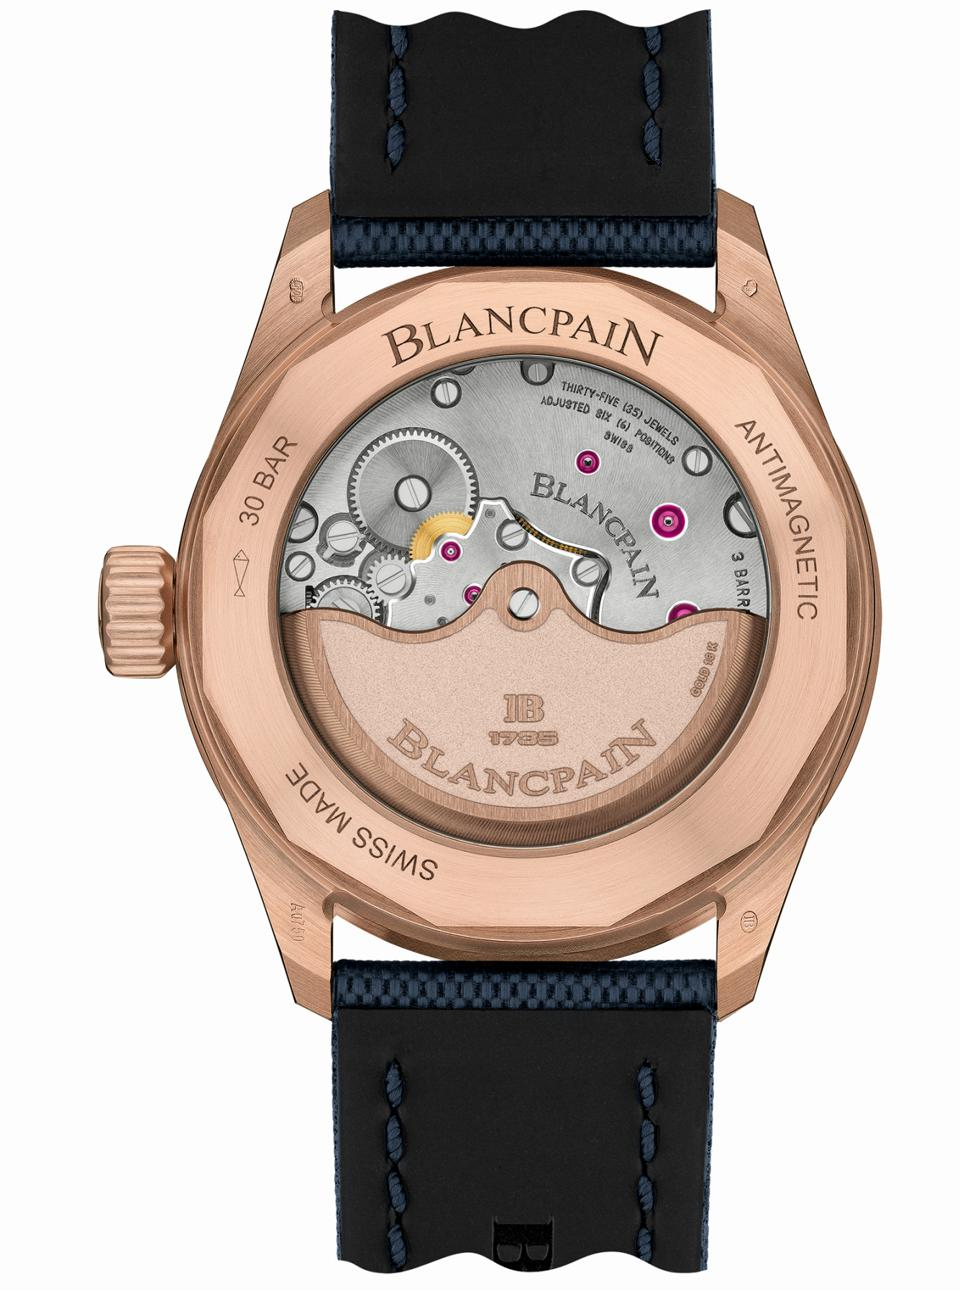 The caseback of the Blancpain Fifty Fathoms Bathyscaphe with blue dial and Sedna red gold